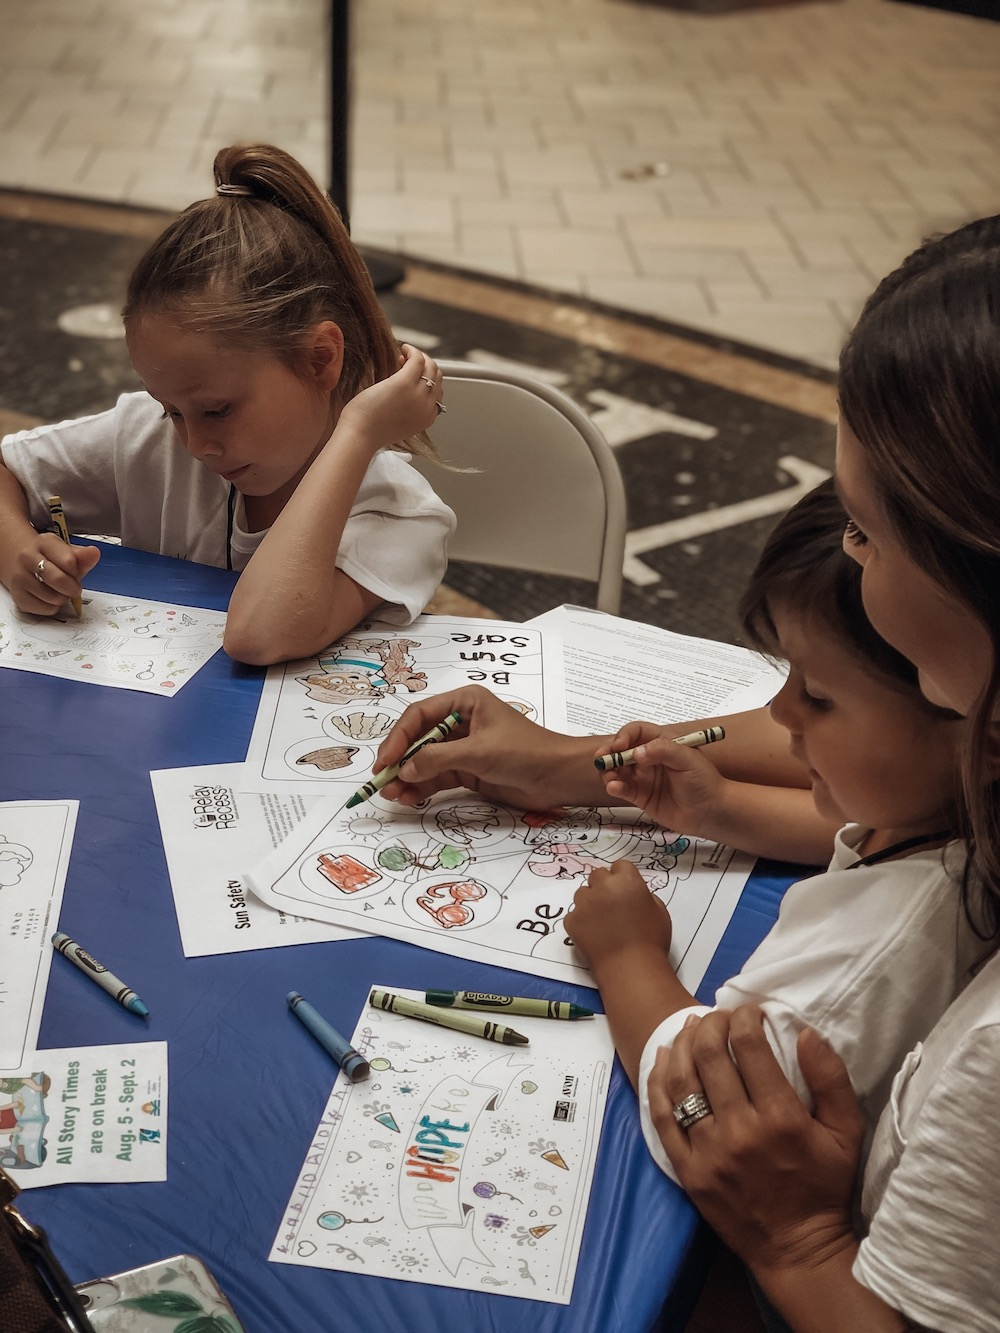 Kids Club activities at Vintage Faire Mall